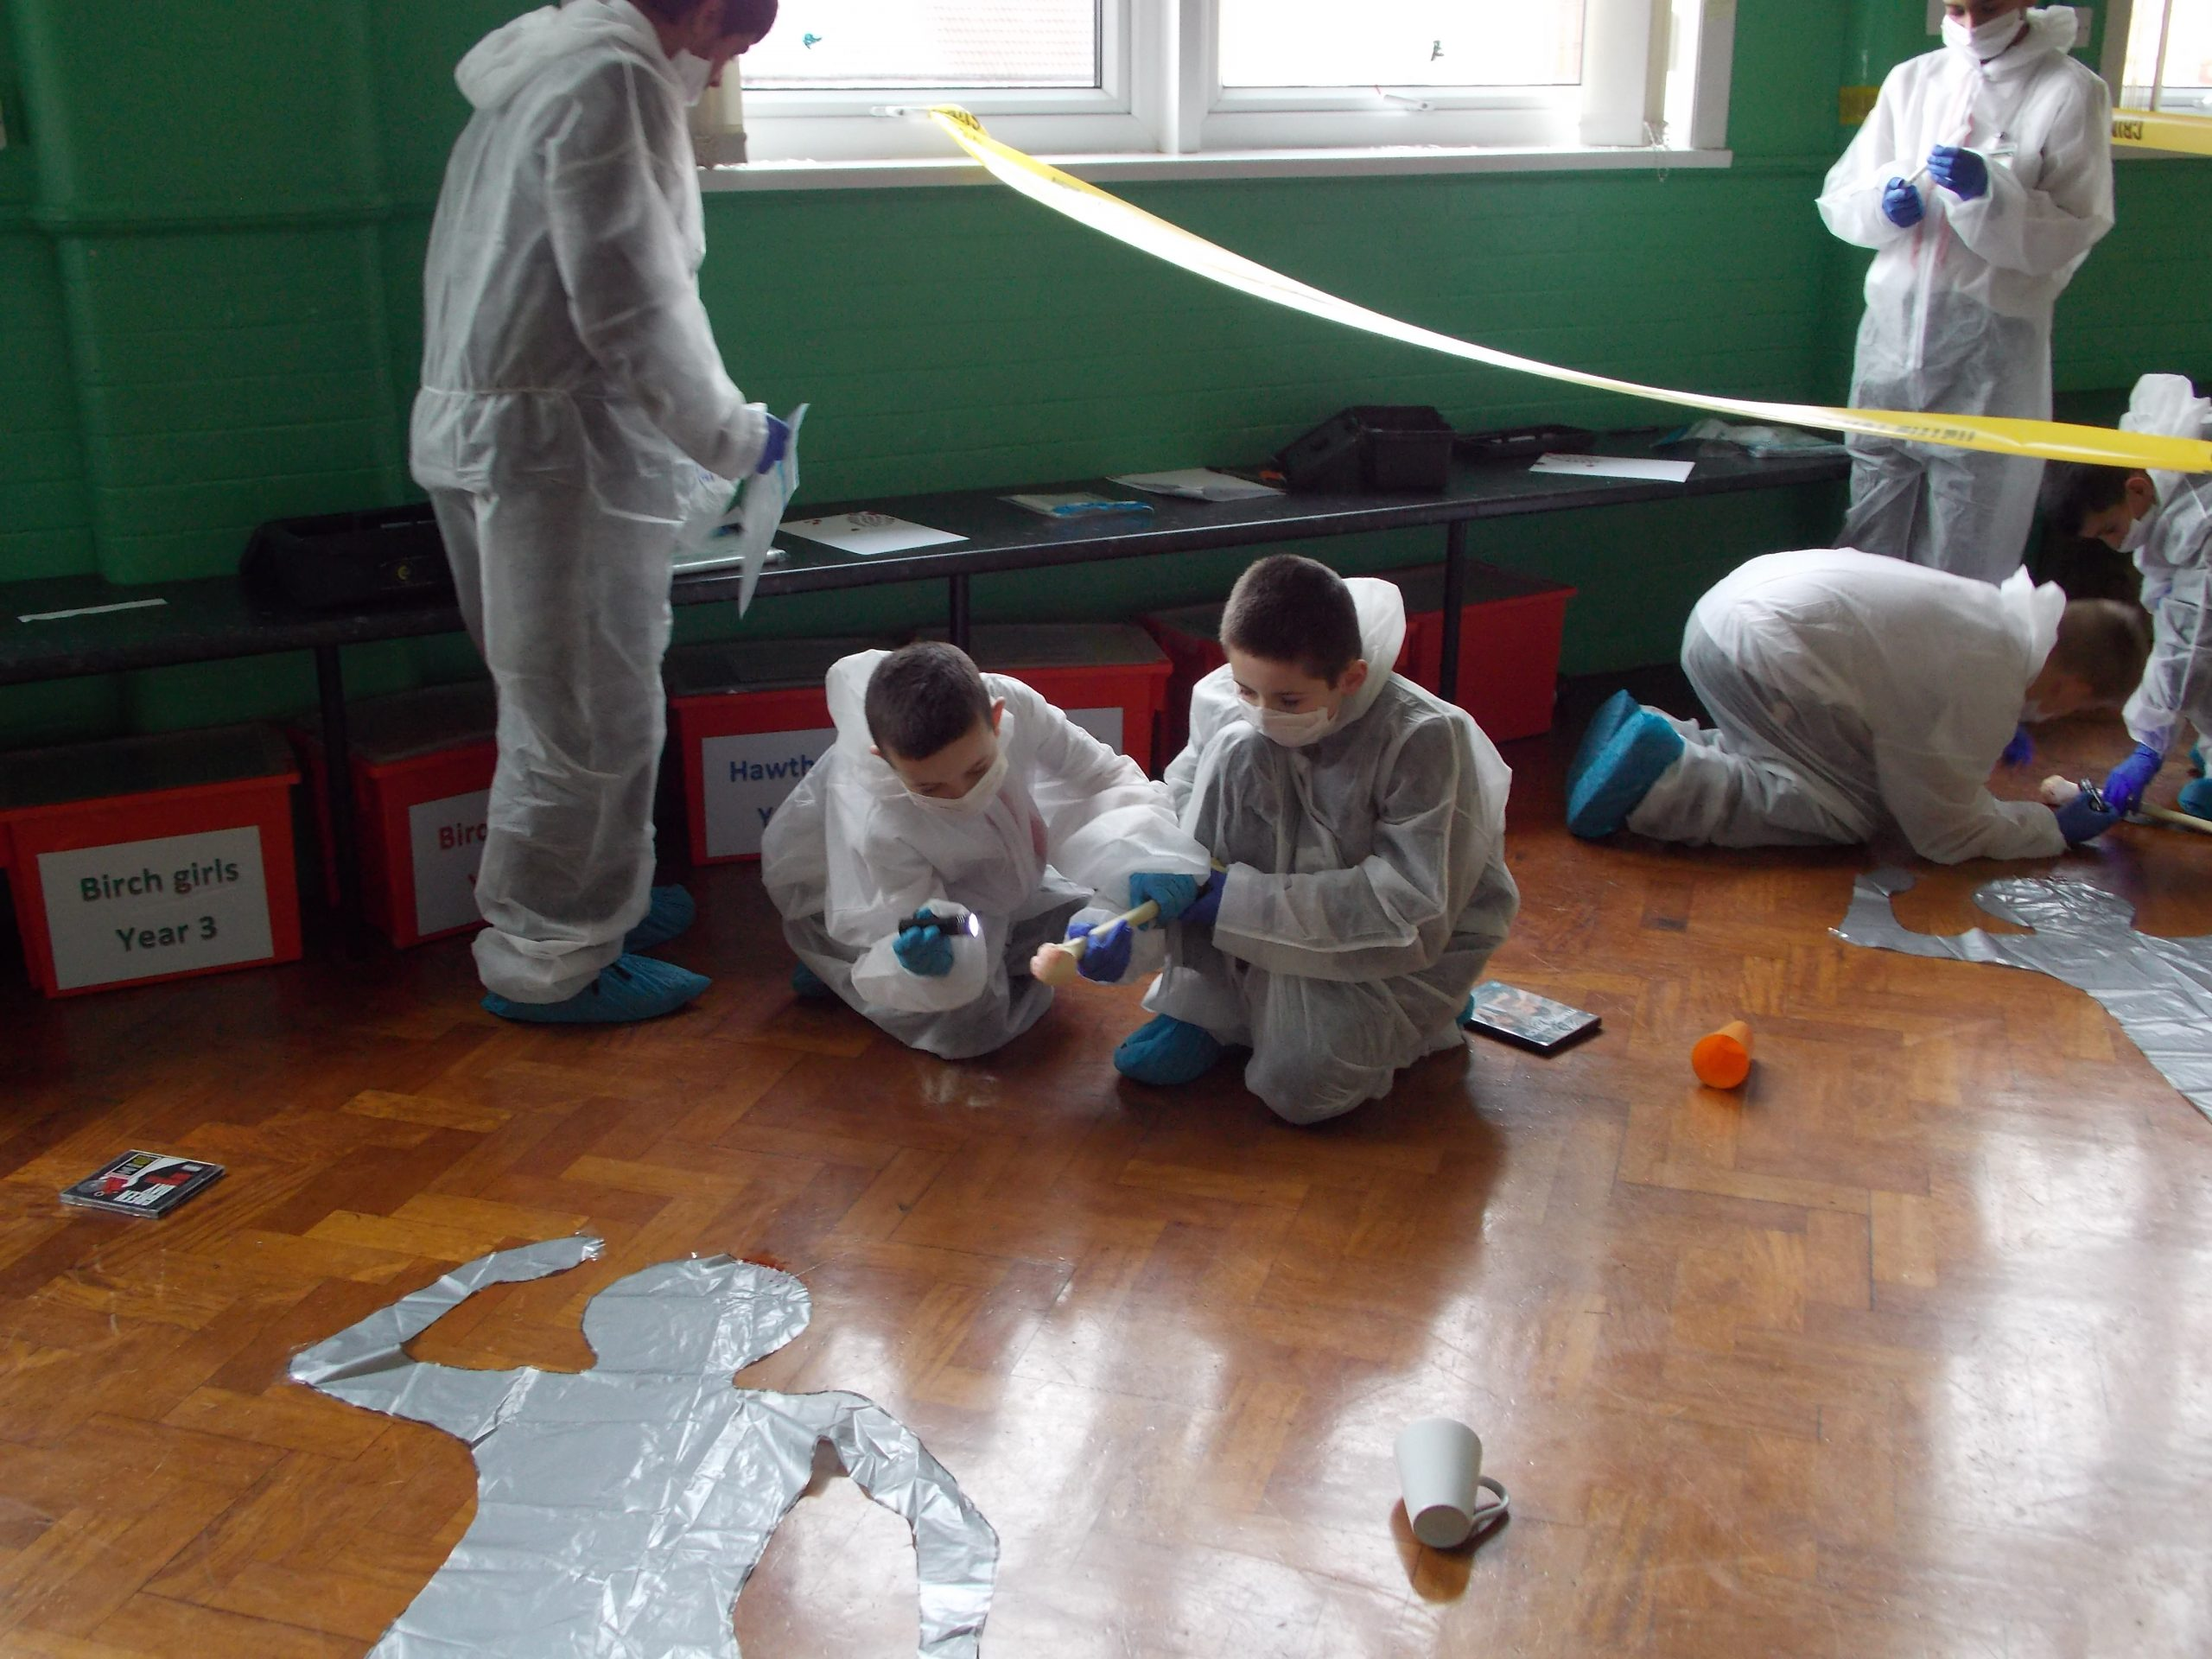 CSI Training and Events - CSI Educational Workshops - Children examining a staged crime scene at a school event